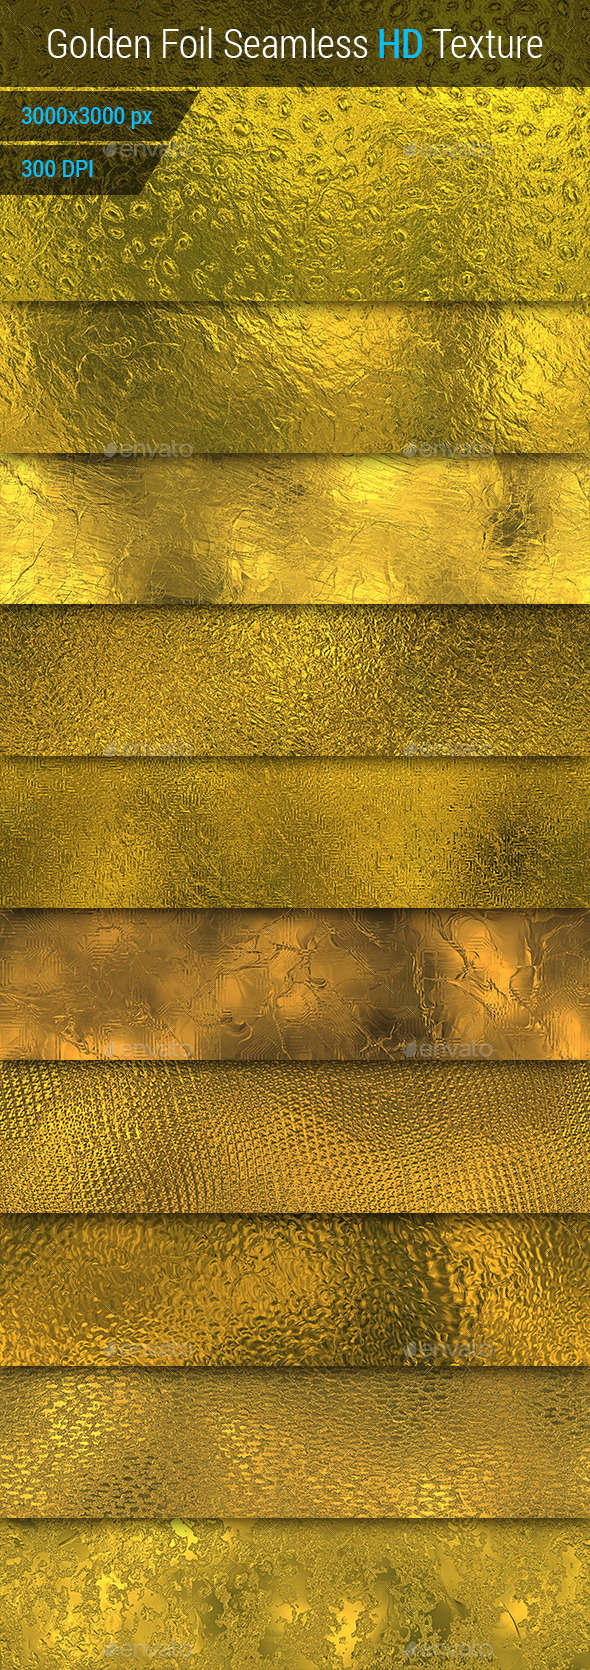 Golden Foil Seamless HD Textures Set